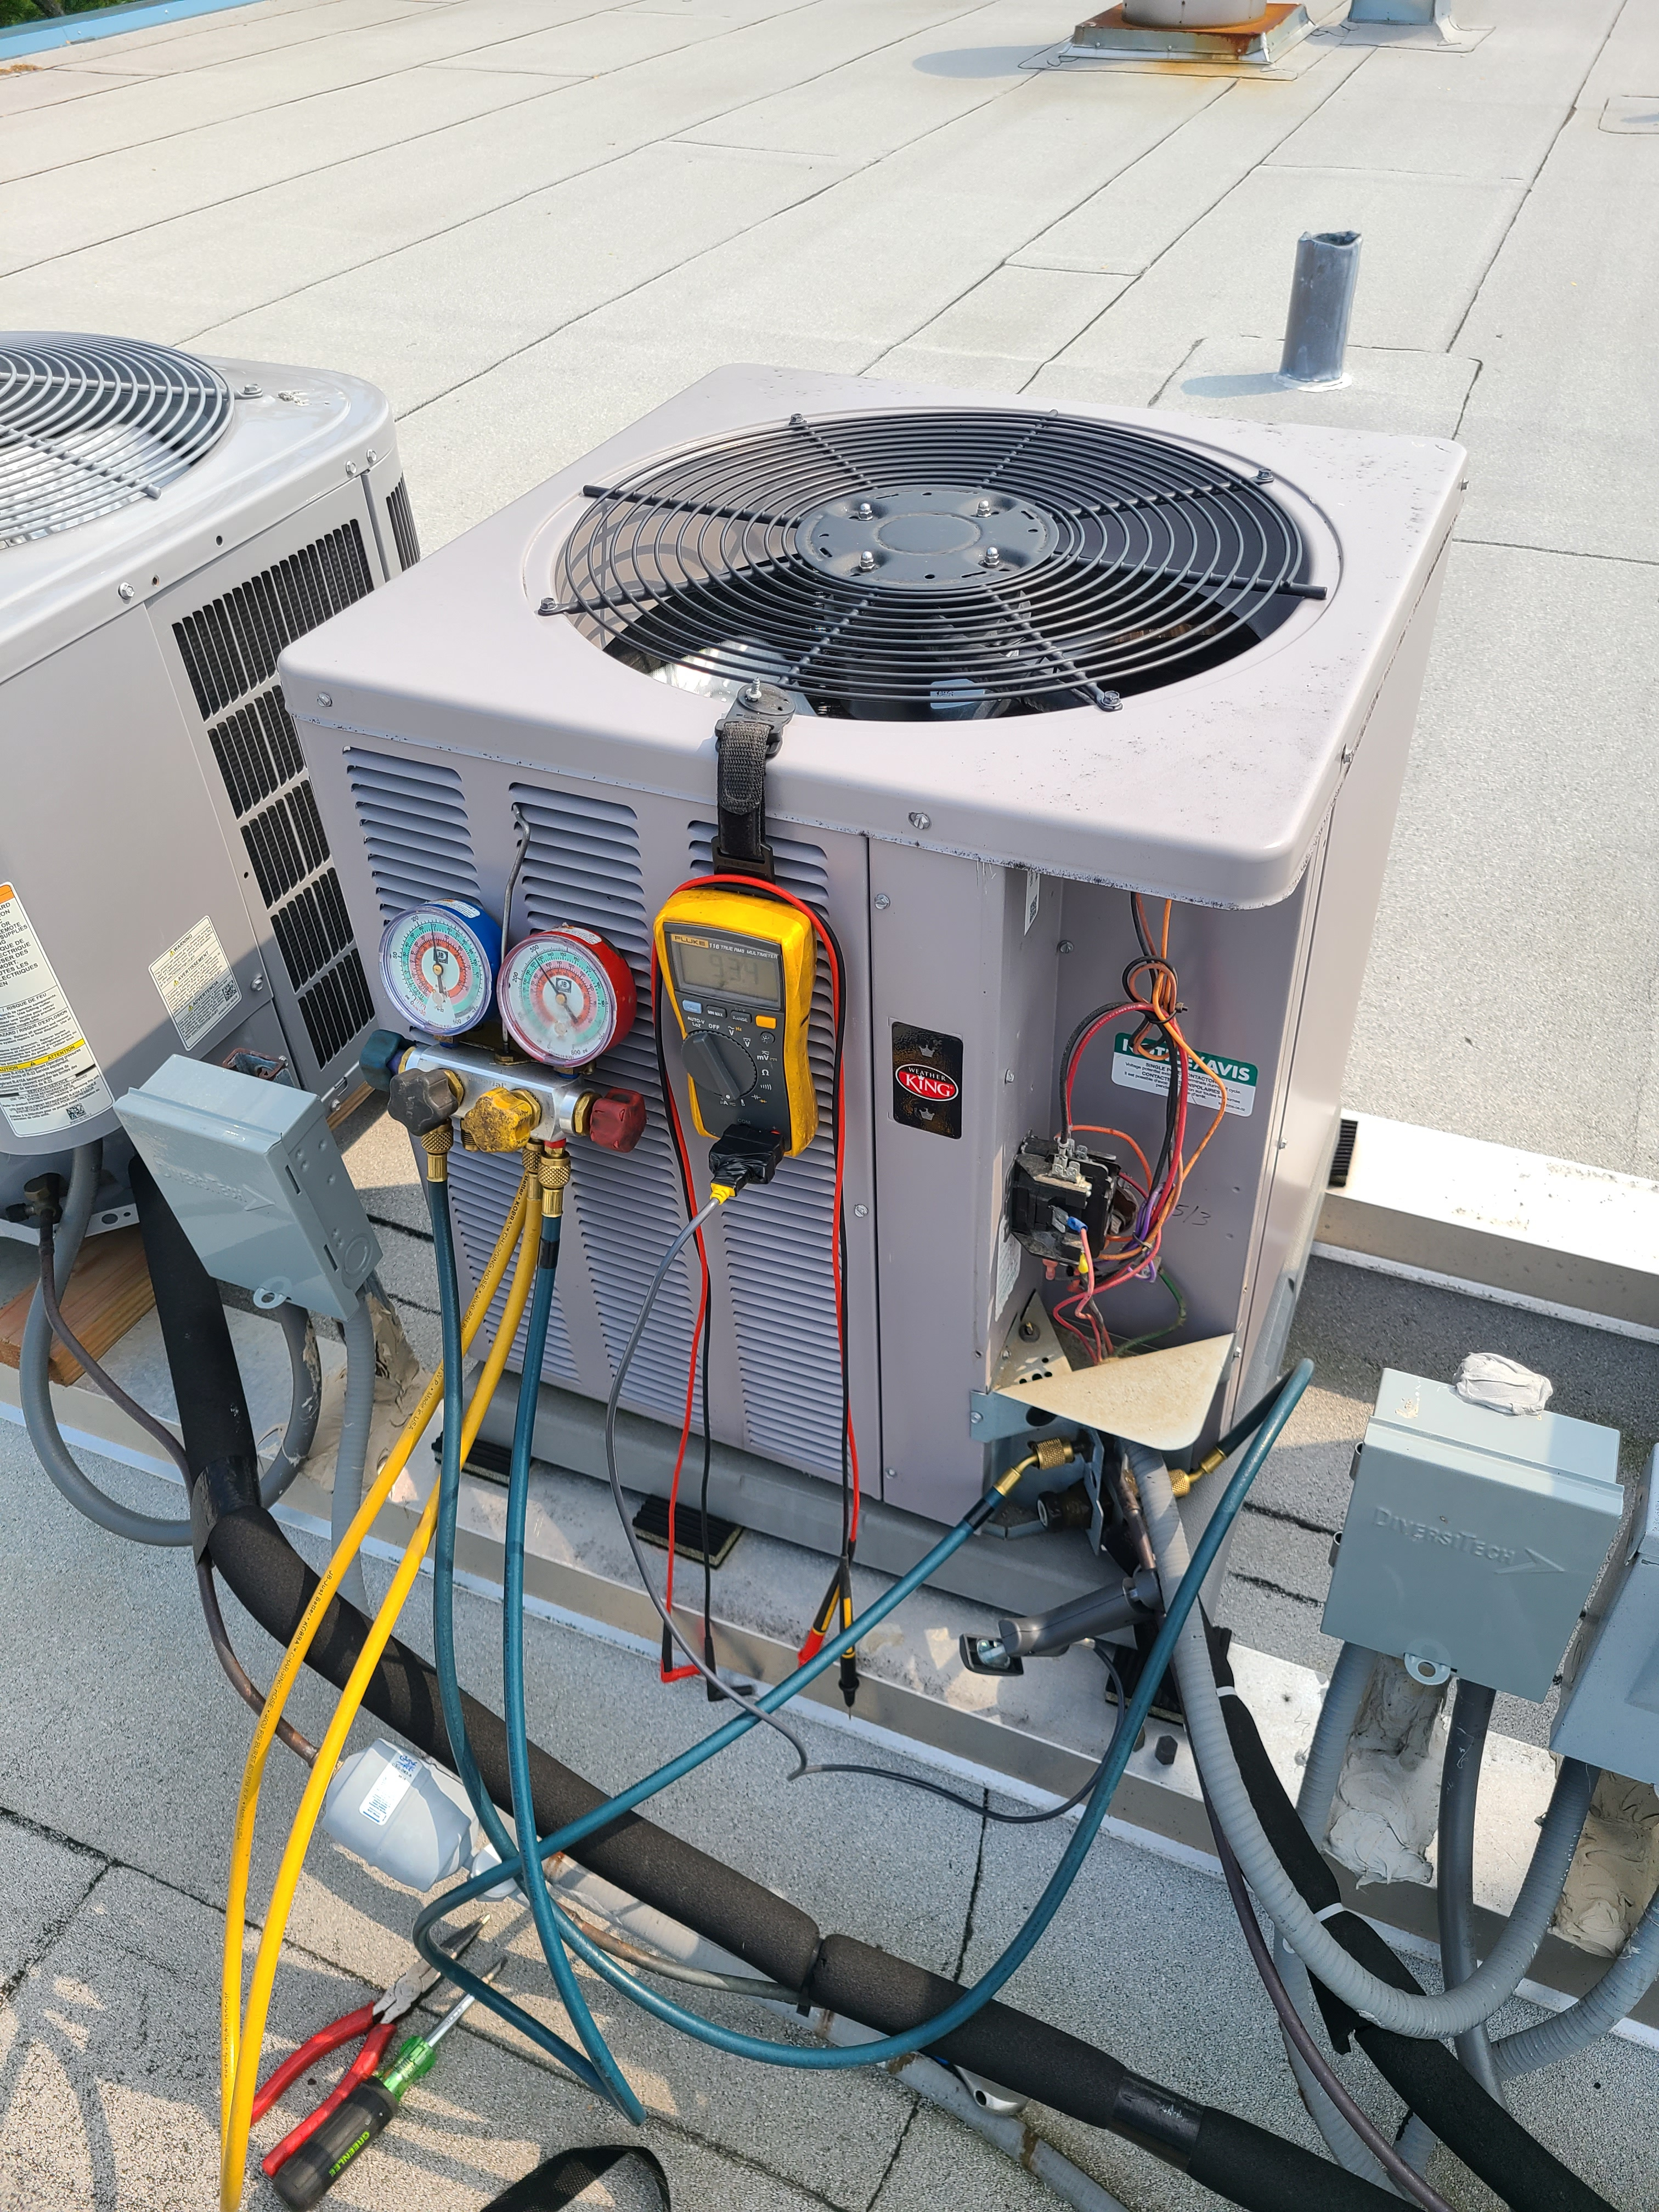 Weather king ac summer tune up and maintenance. System cleaned and checked and ready for summer.